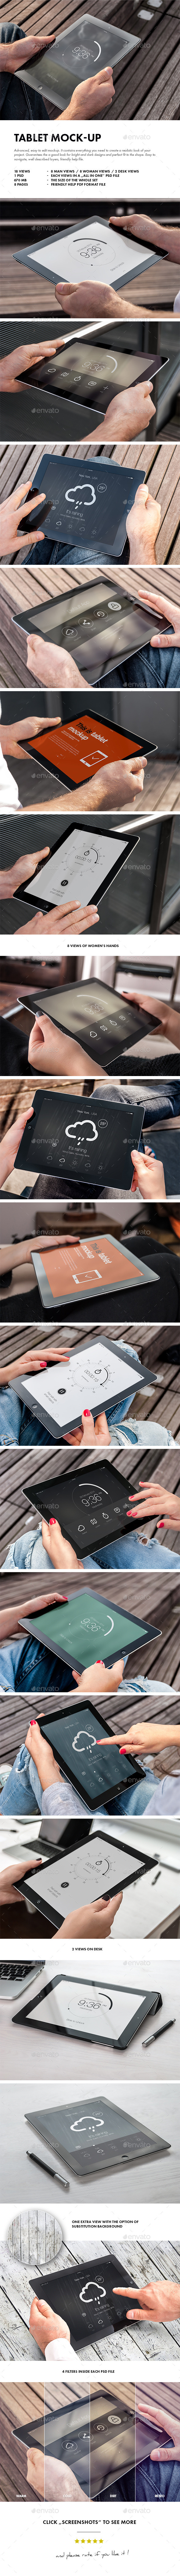 GraphicRiver Tablet Mock-up 9201108